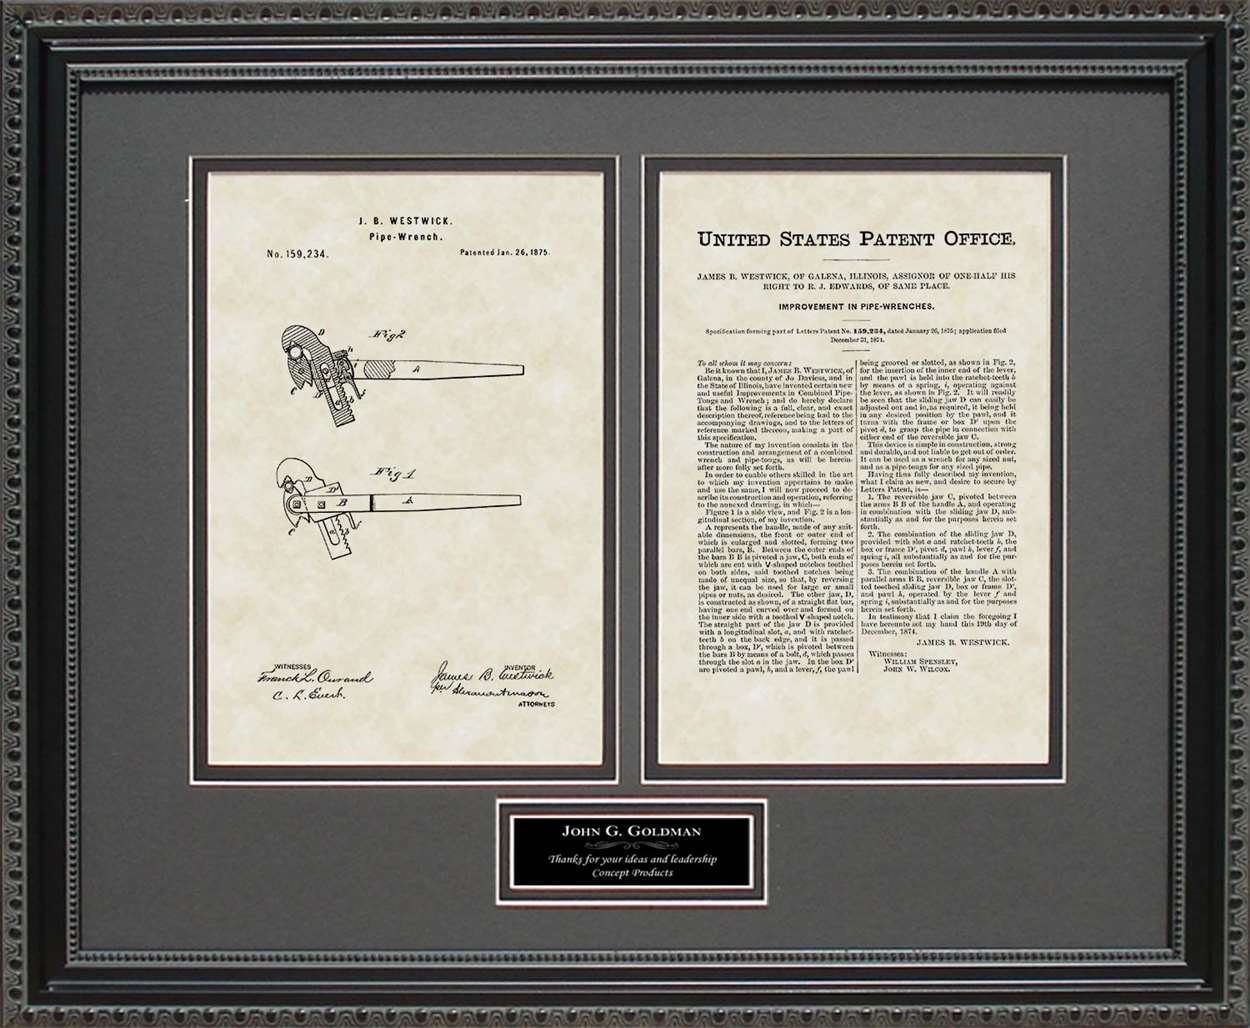 Personalized Pipe Wrench Patent, Art & Copy, Westwick, 1875